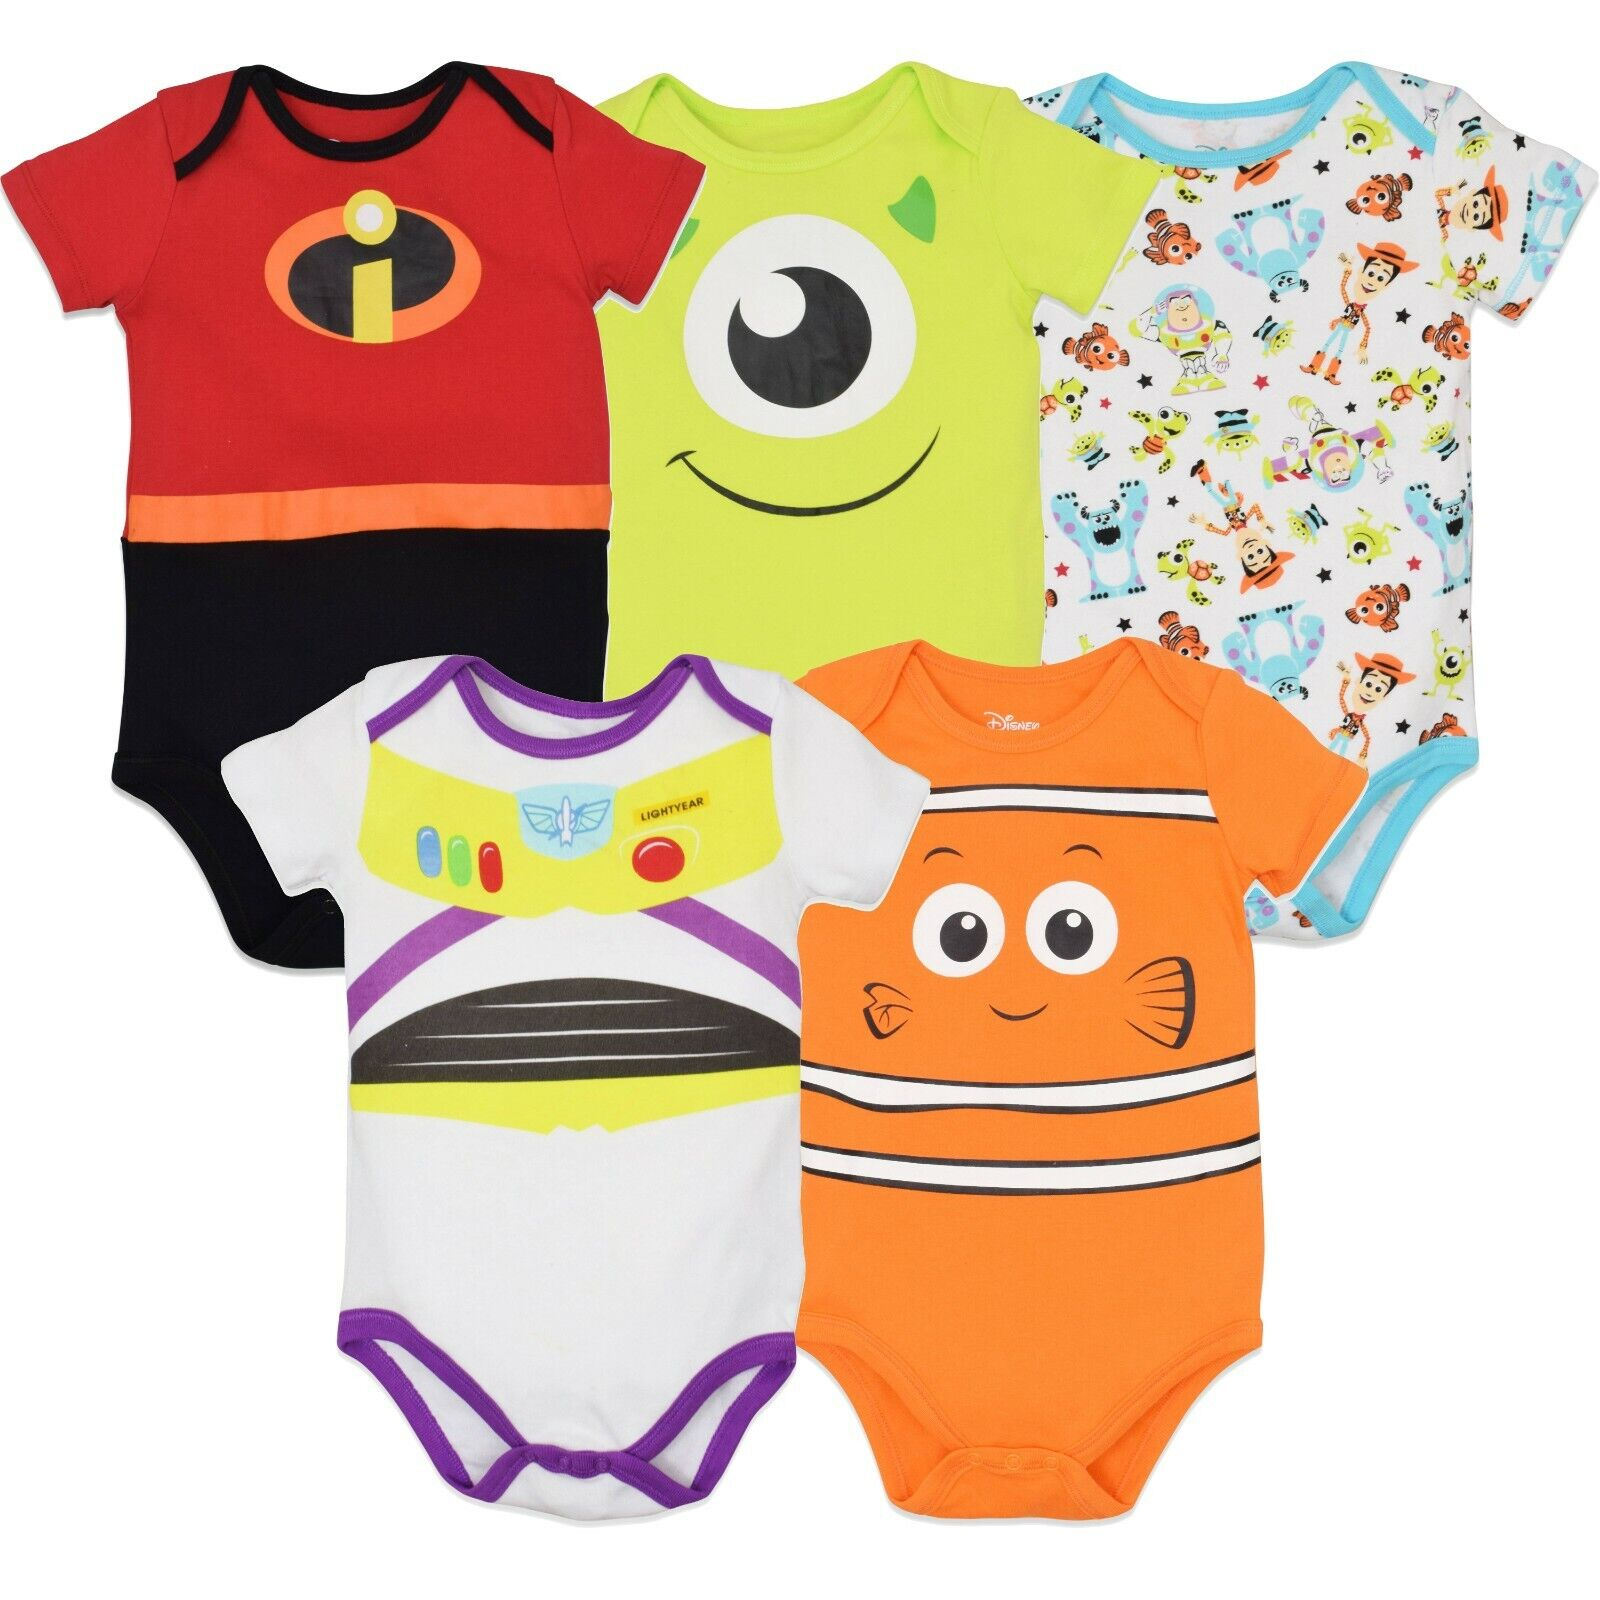 Disney Pixar Baby Boy Girl 5 Pack Bodysuits Nemo Buzz Incred